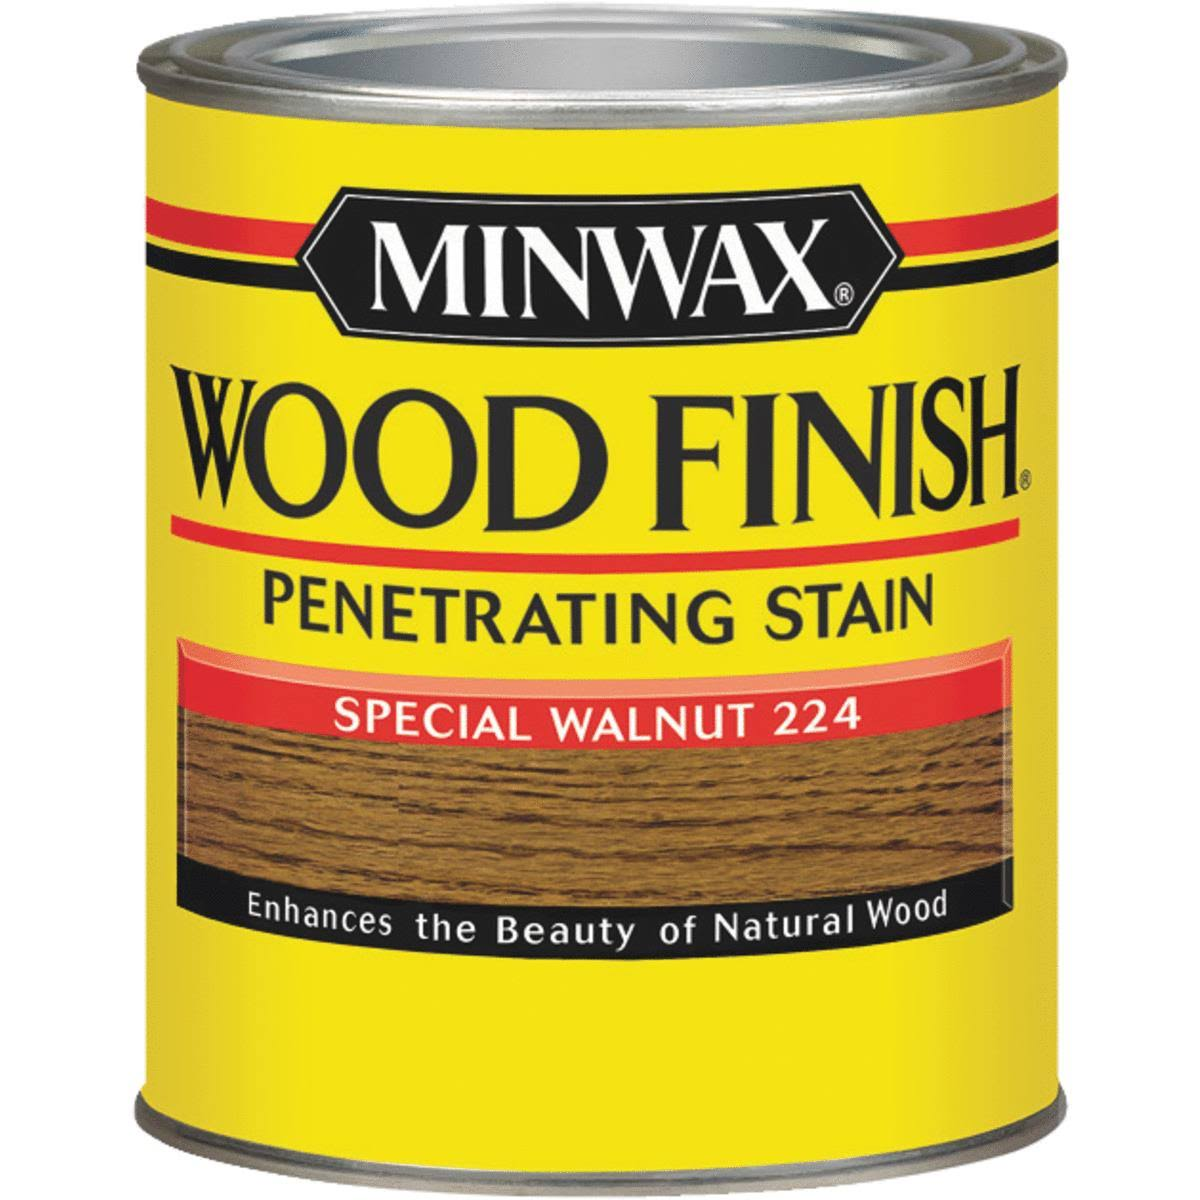 Minwax Wood Finish - 224 Special Walnut